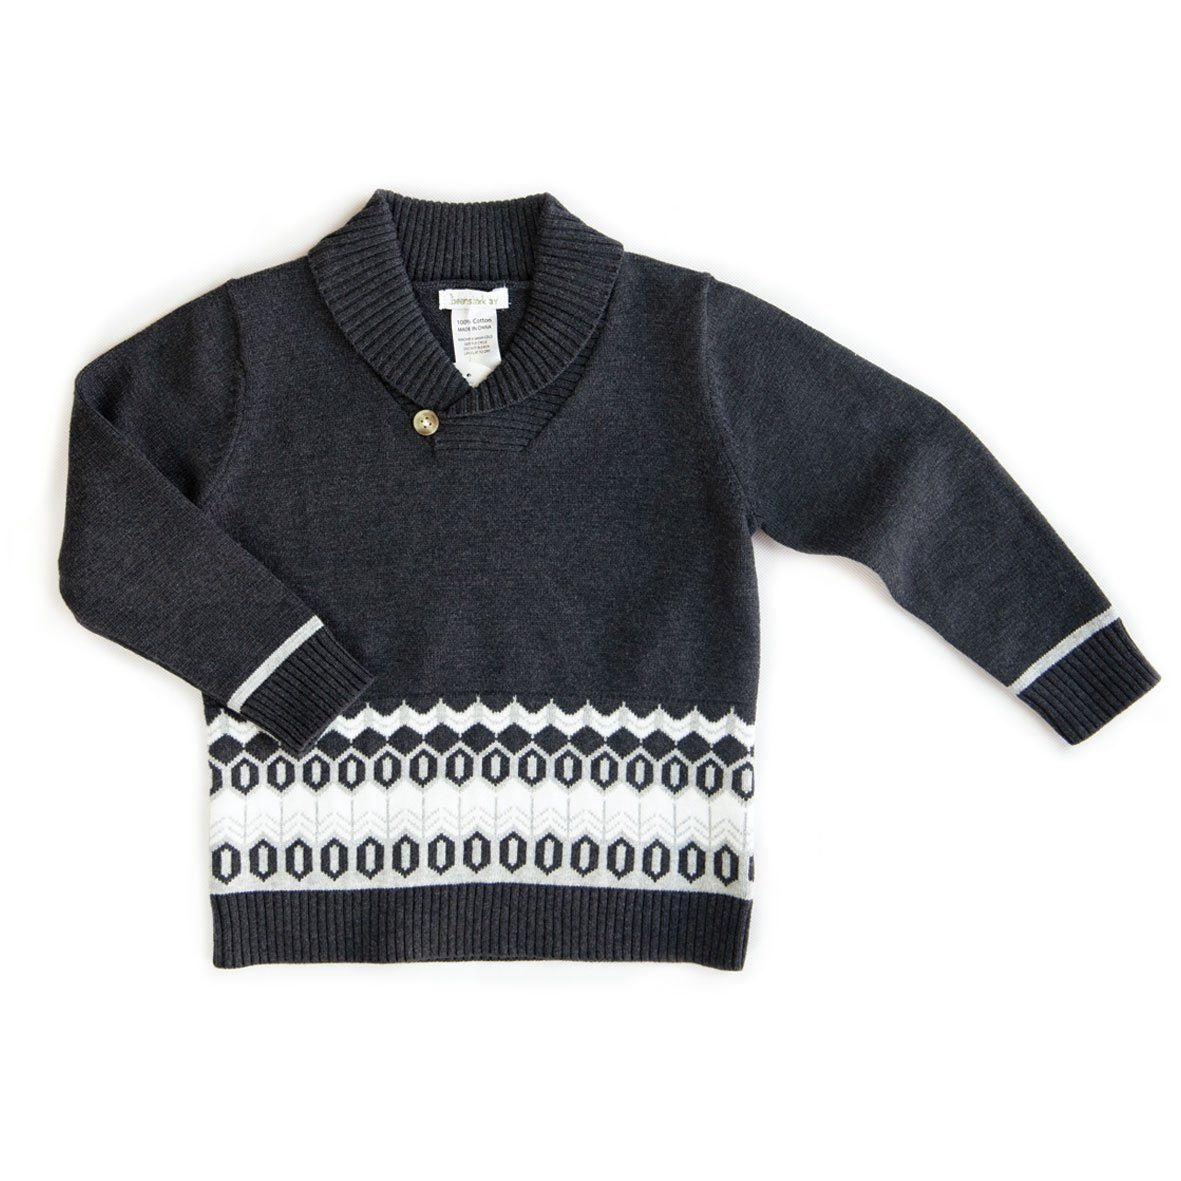 BEANSTORK - Falls Sweater Charcoal